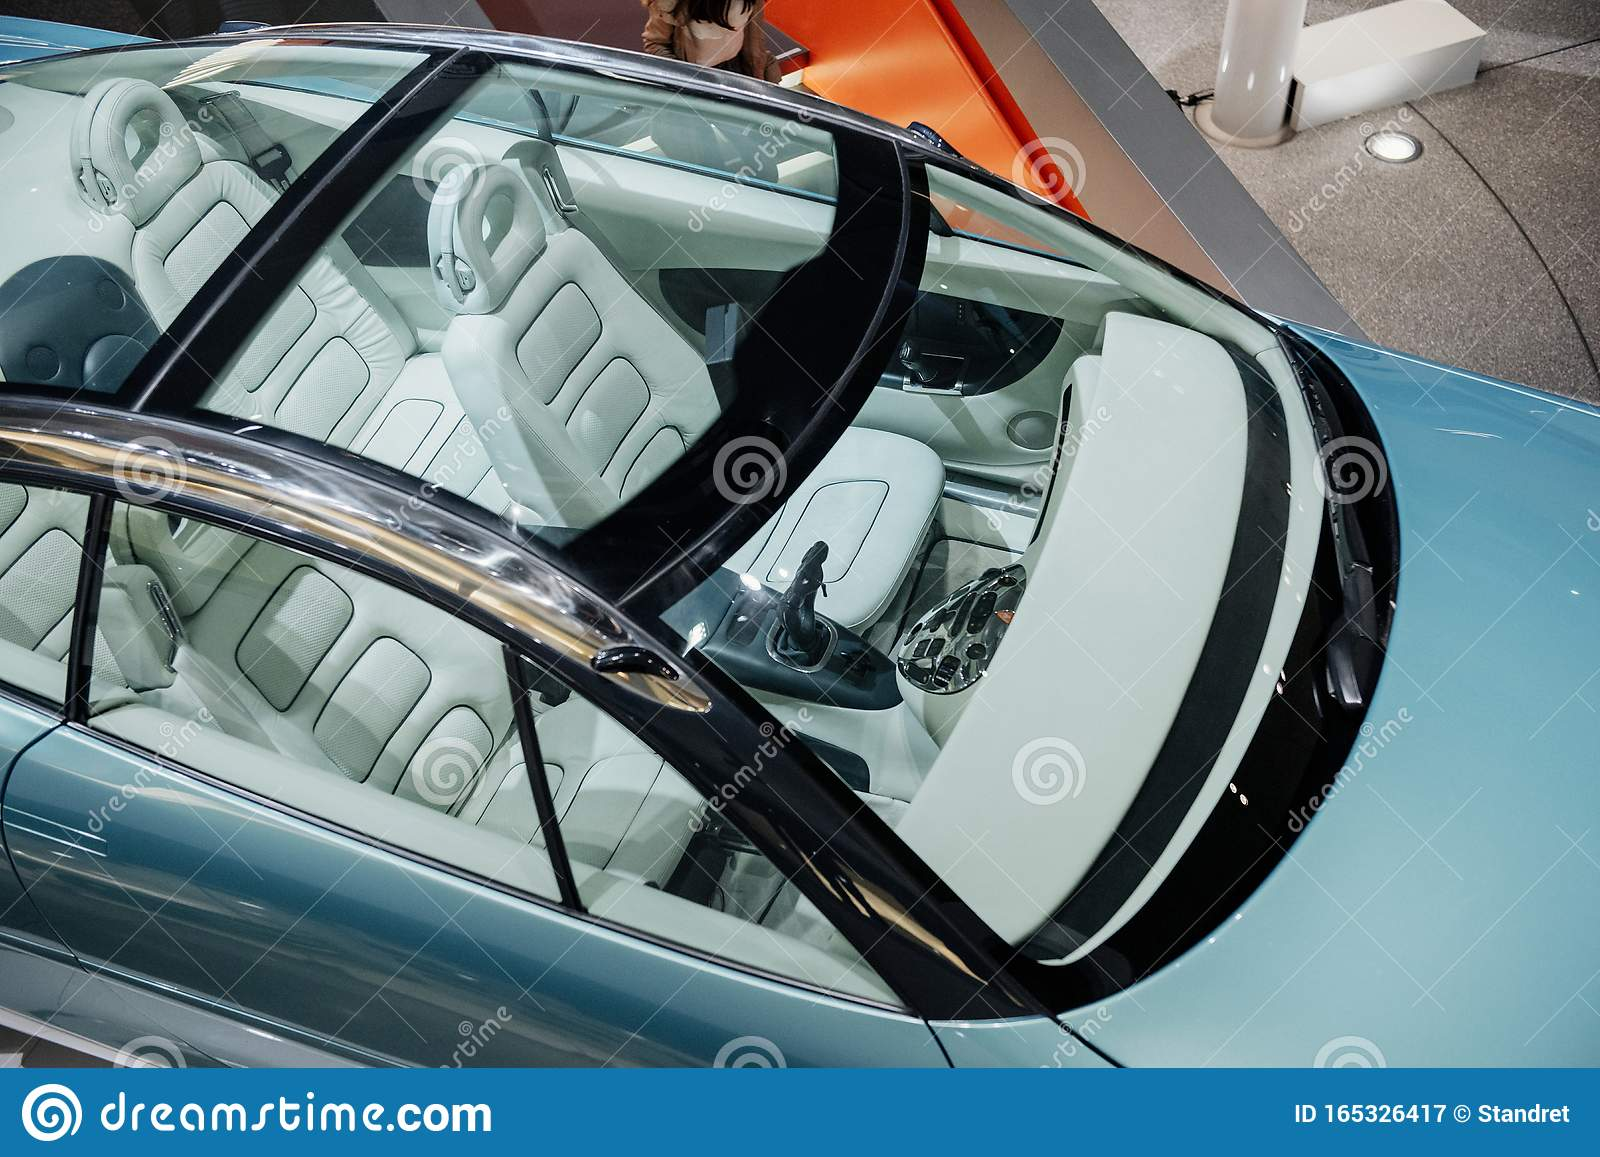 1 944 Car Roof Interior Photos Free Royalty Free Stock Photos From Dreamstime